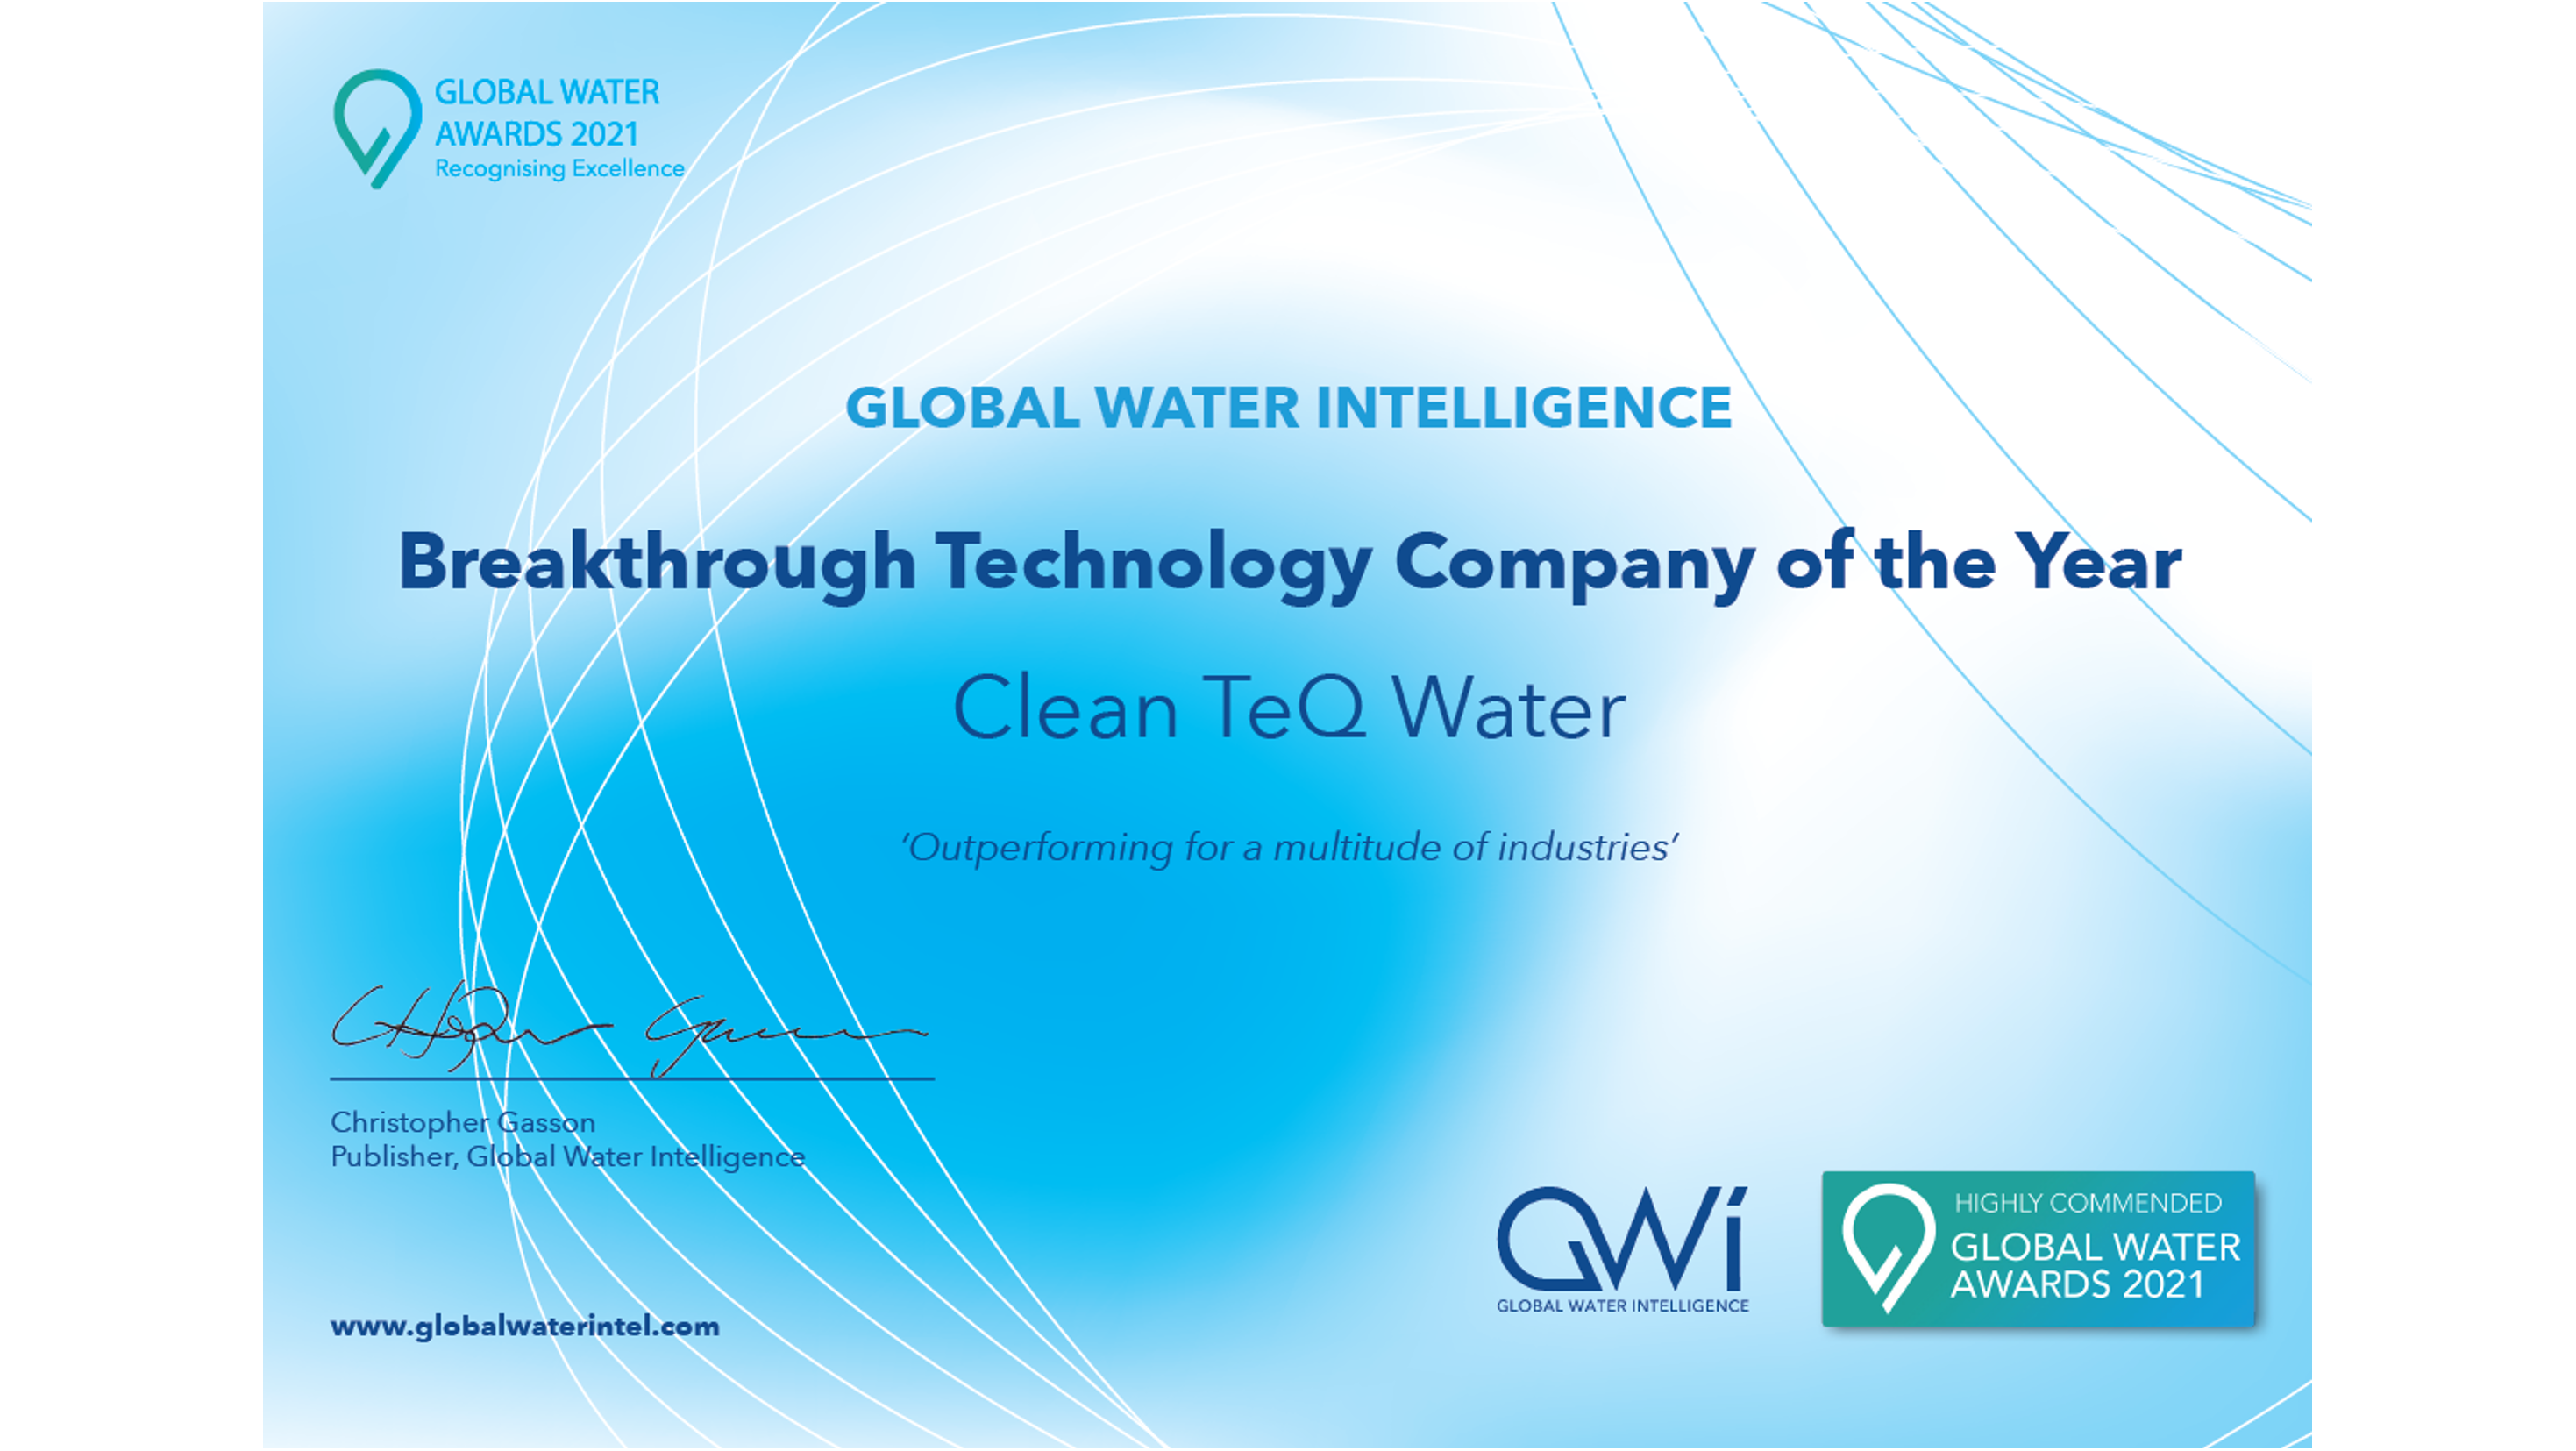 Clean TeQ Water Receives Highly Commended Award